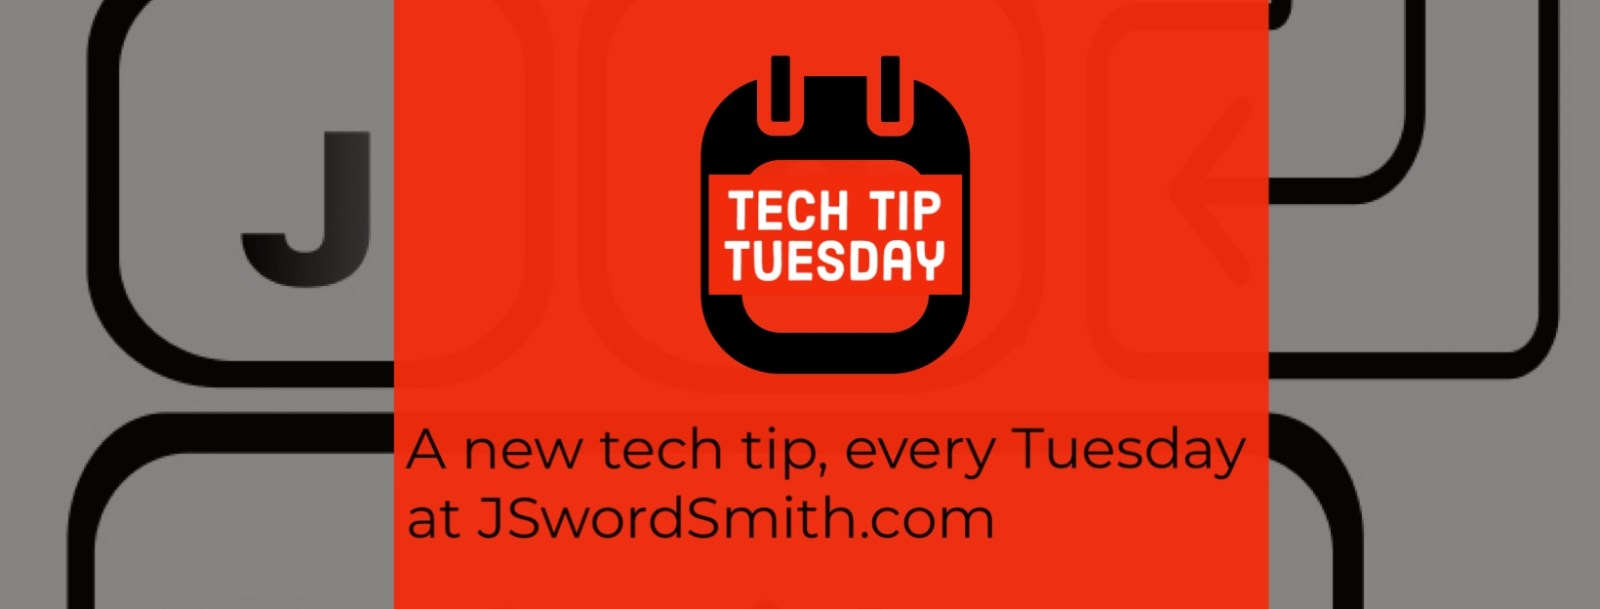 tech Tip Tuesday Banner